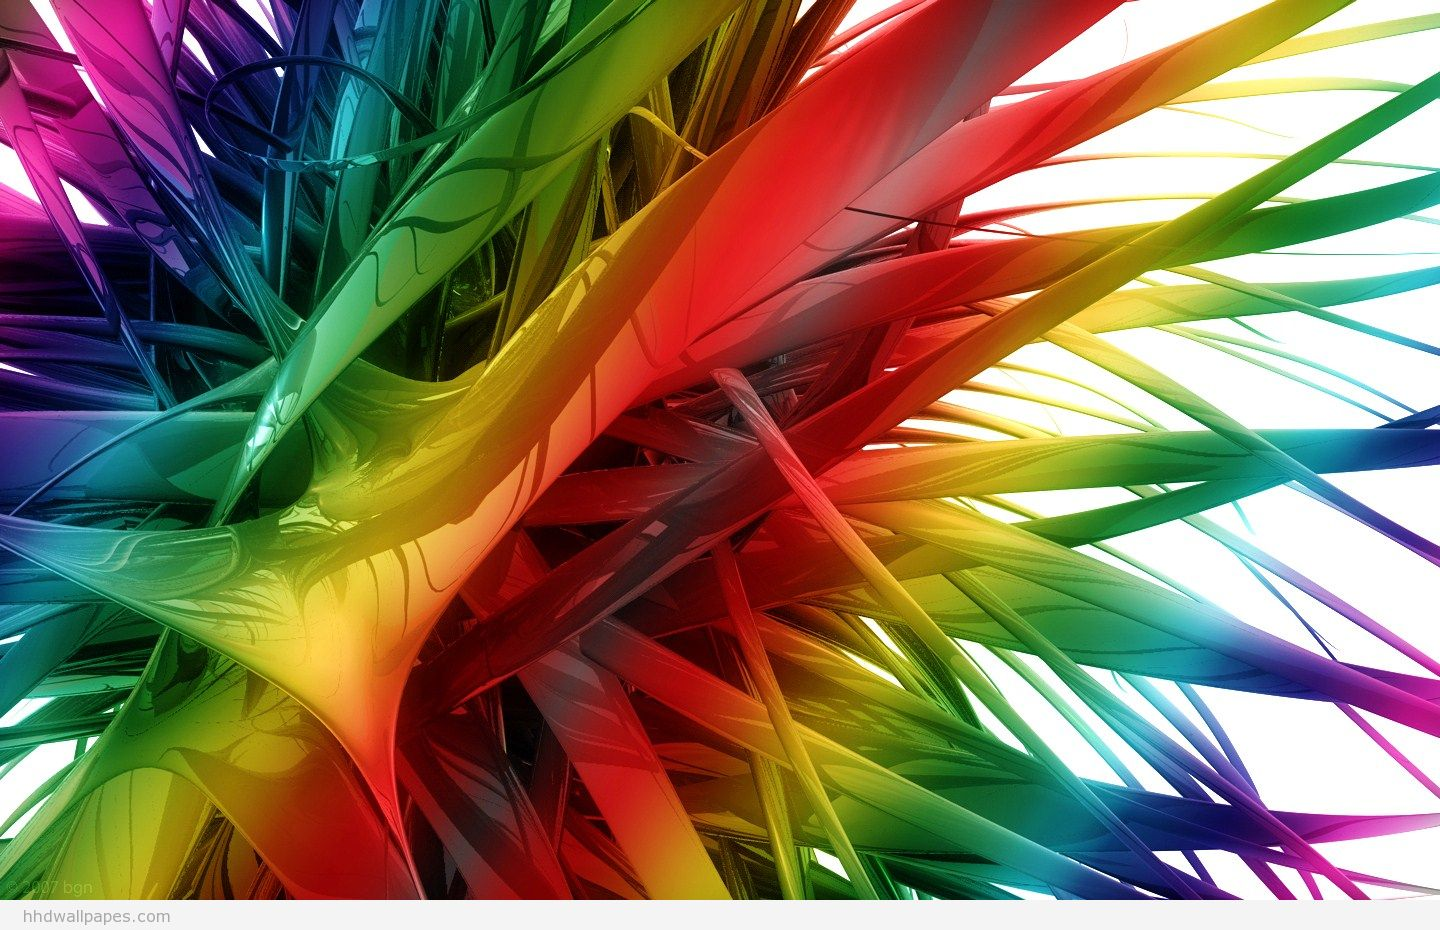 Color art facebook - Art Definition Of Color Awesome Colors Cool Wallpapers Share This Cool Wallpaper On Facebook